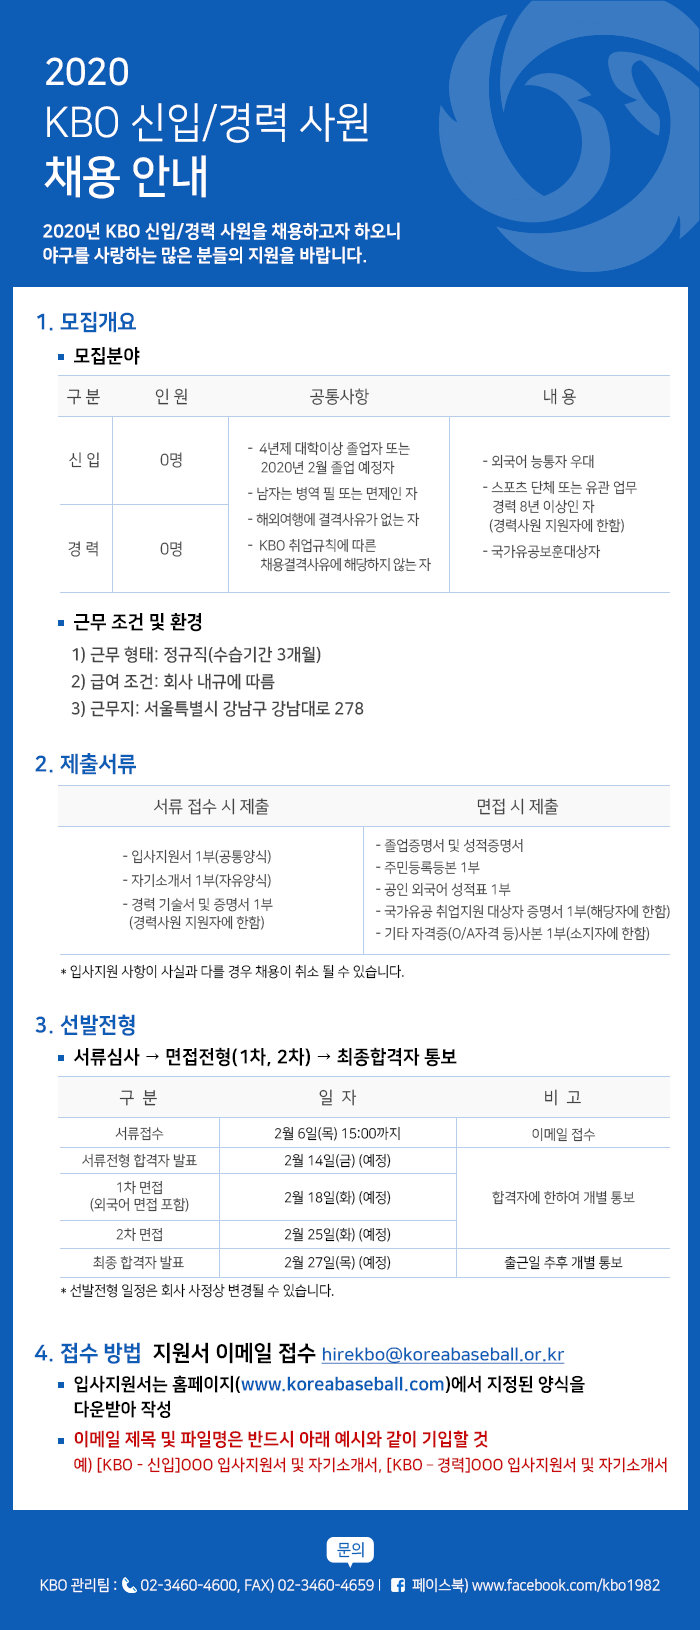 notice/images/2020/1/2020 KBO 신입,경력사원 채용-공고.png